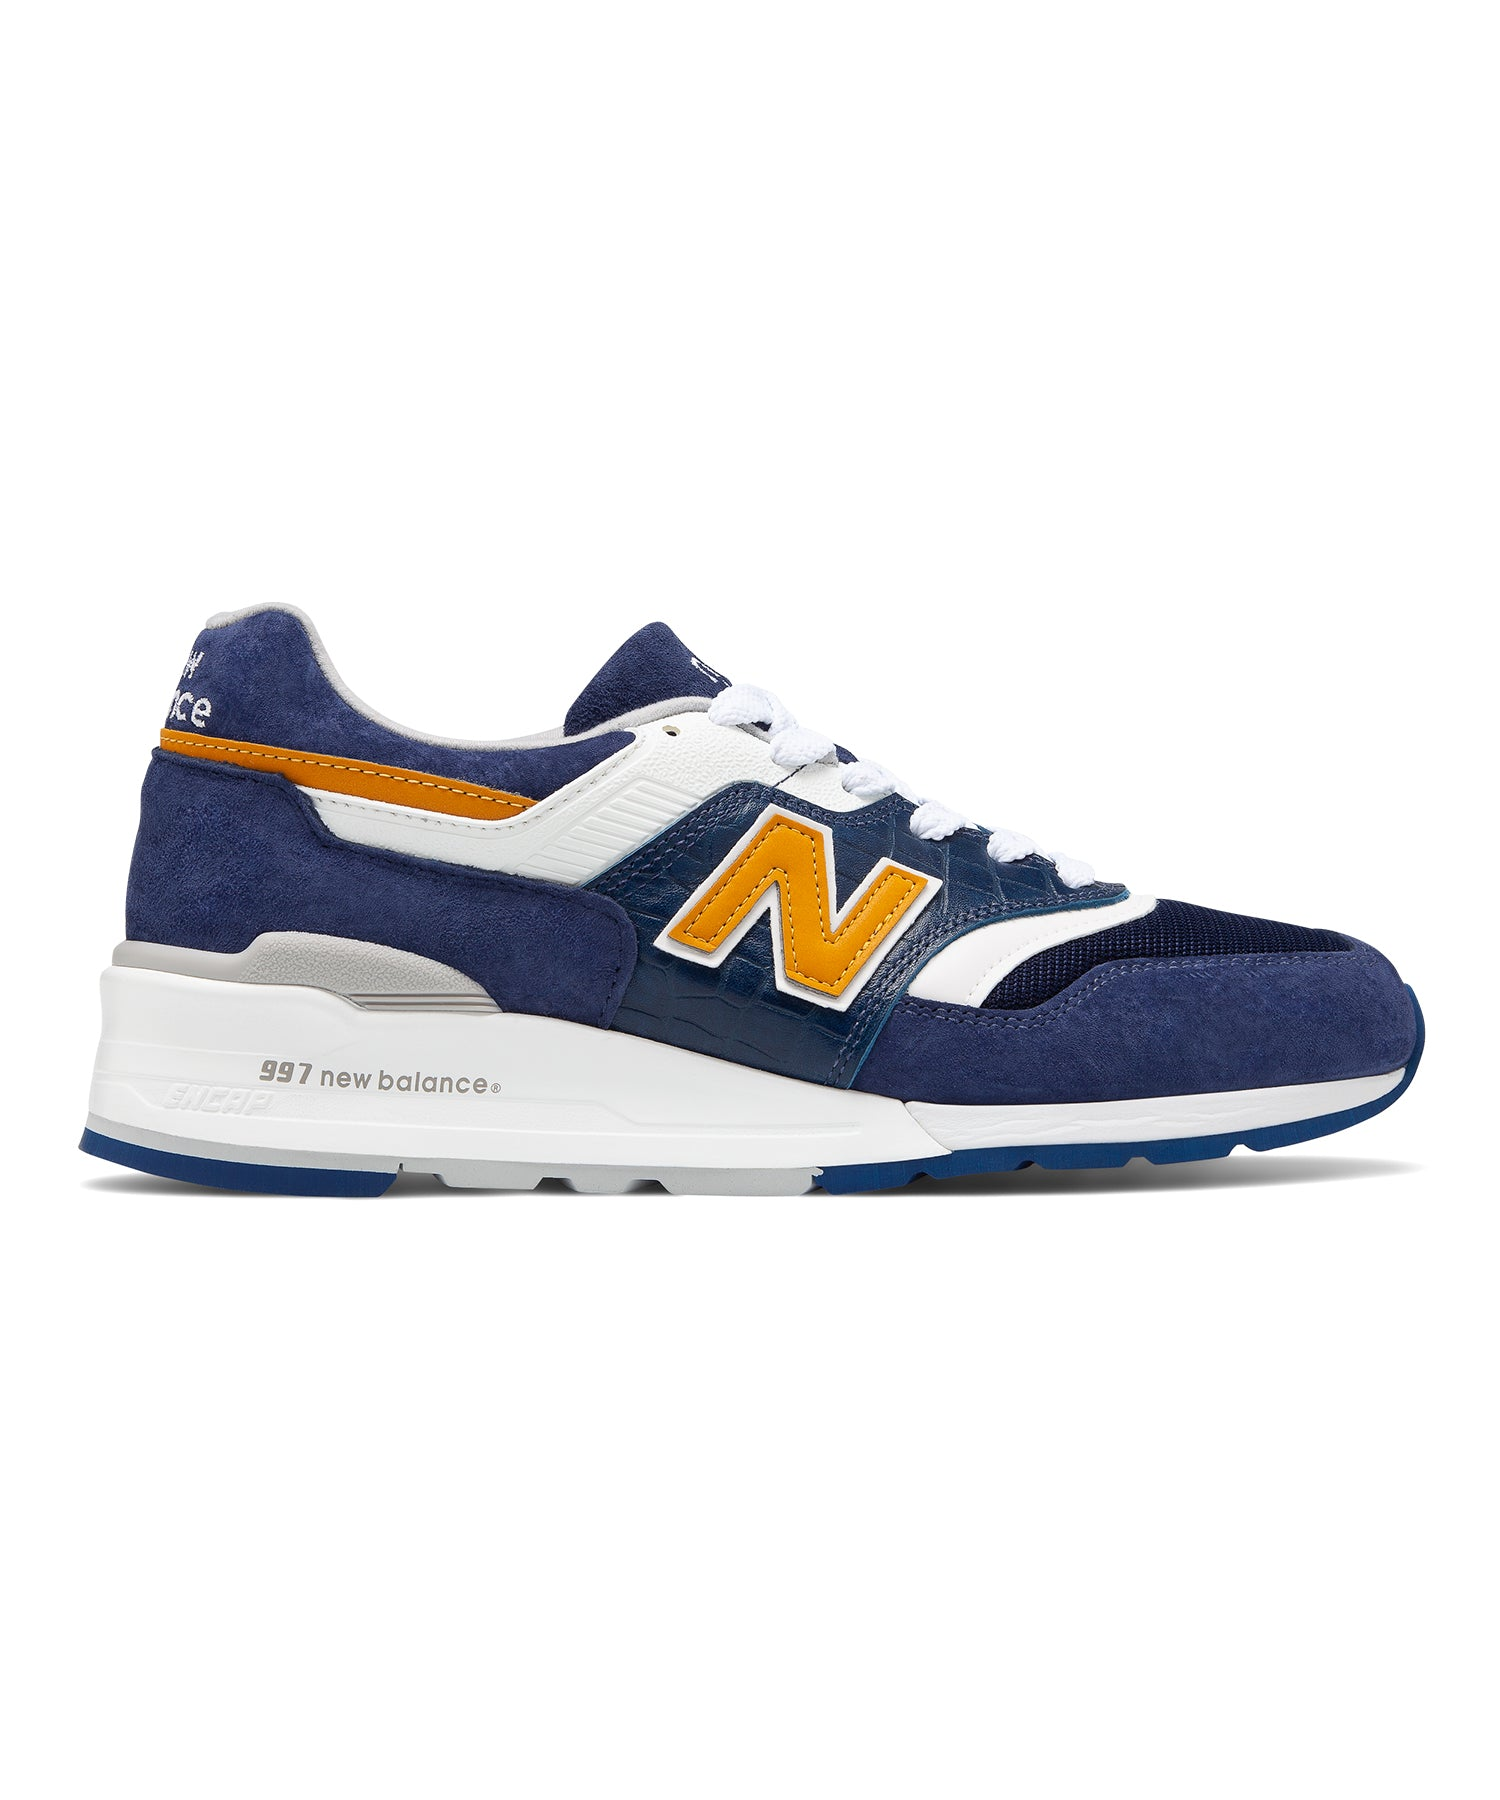 New Balance Pig Suede Made in US 997